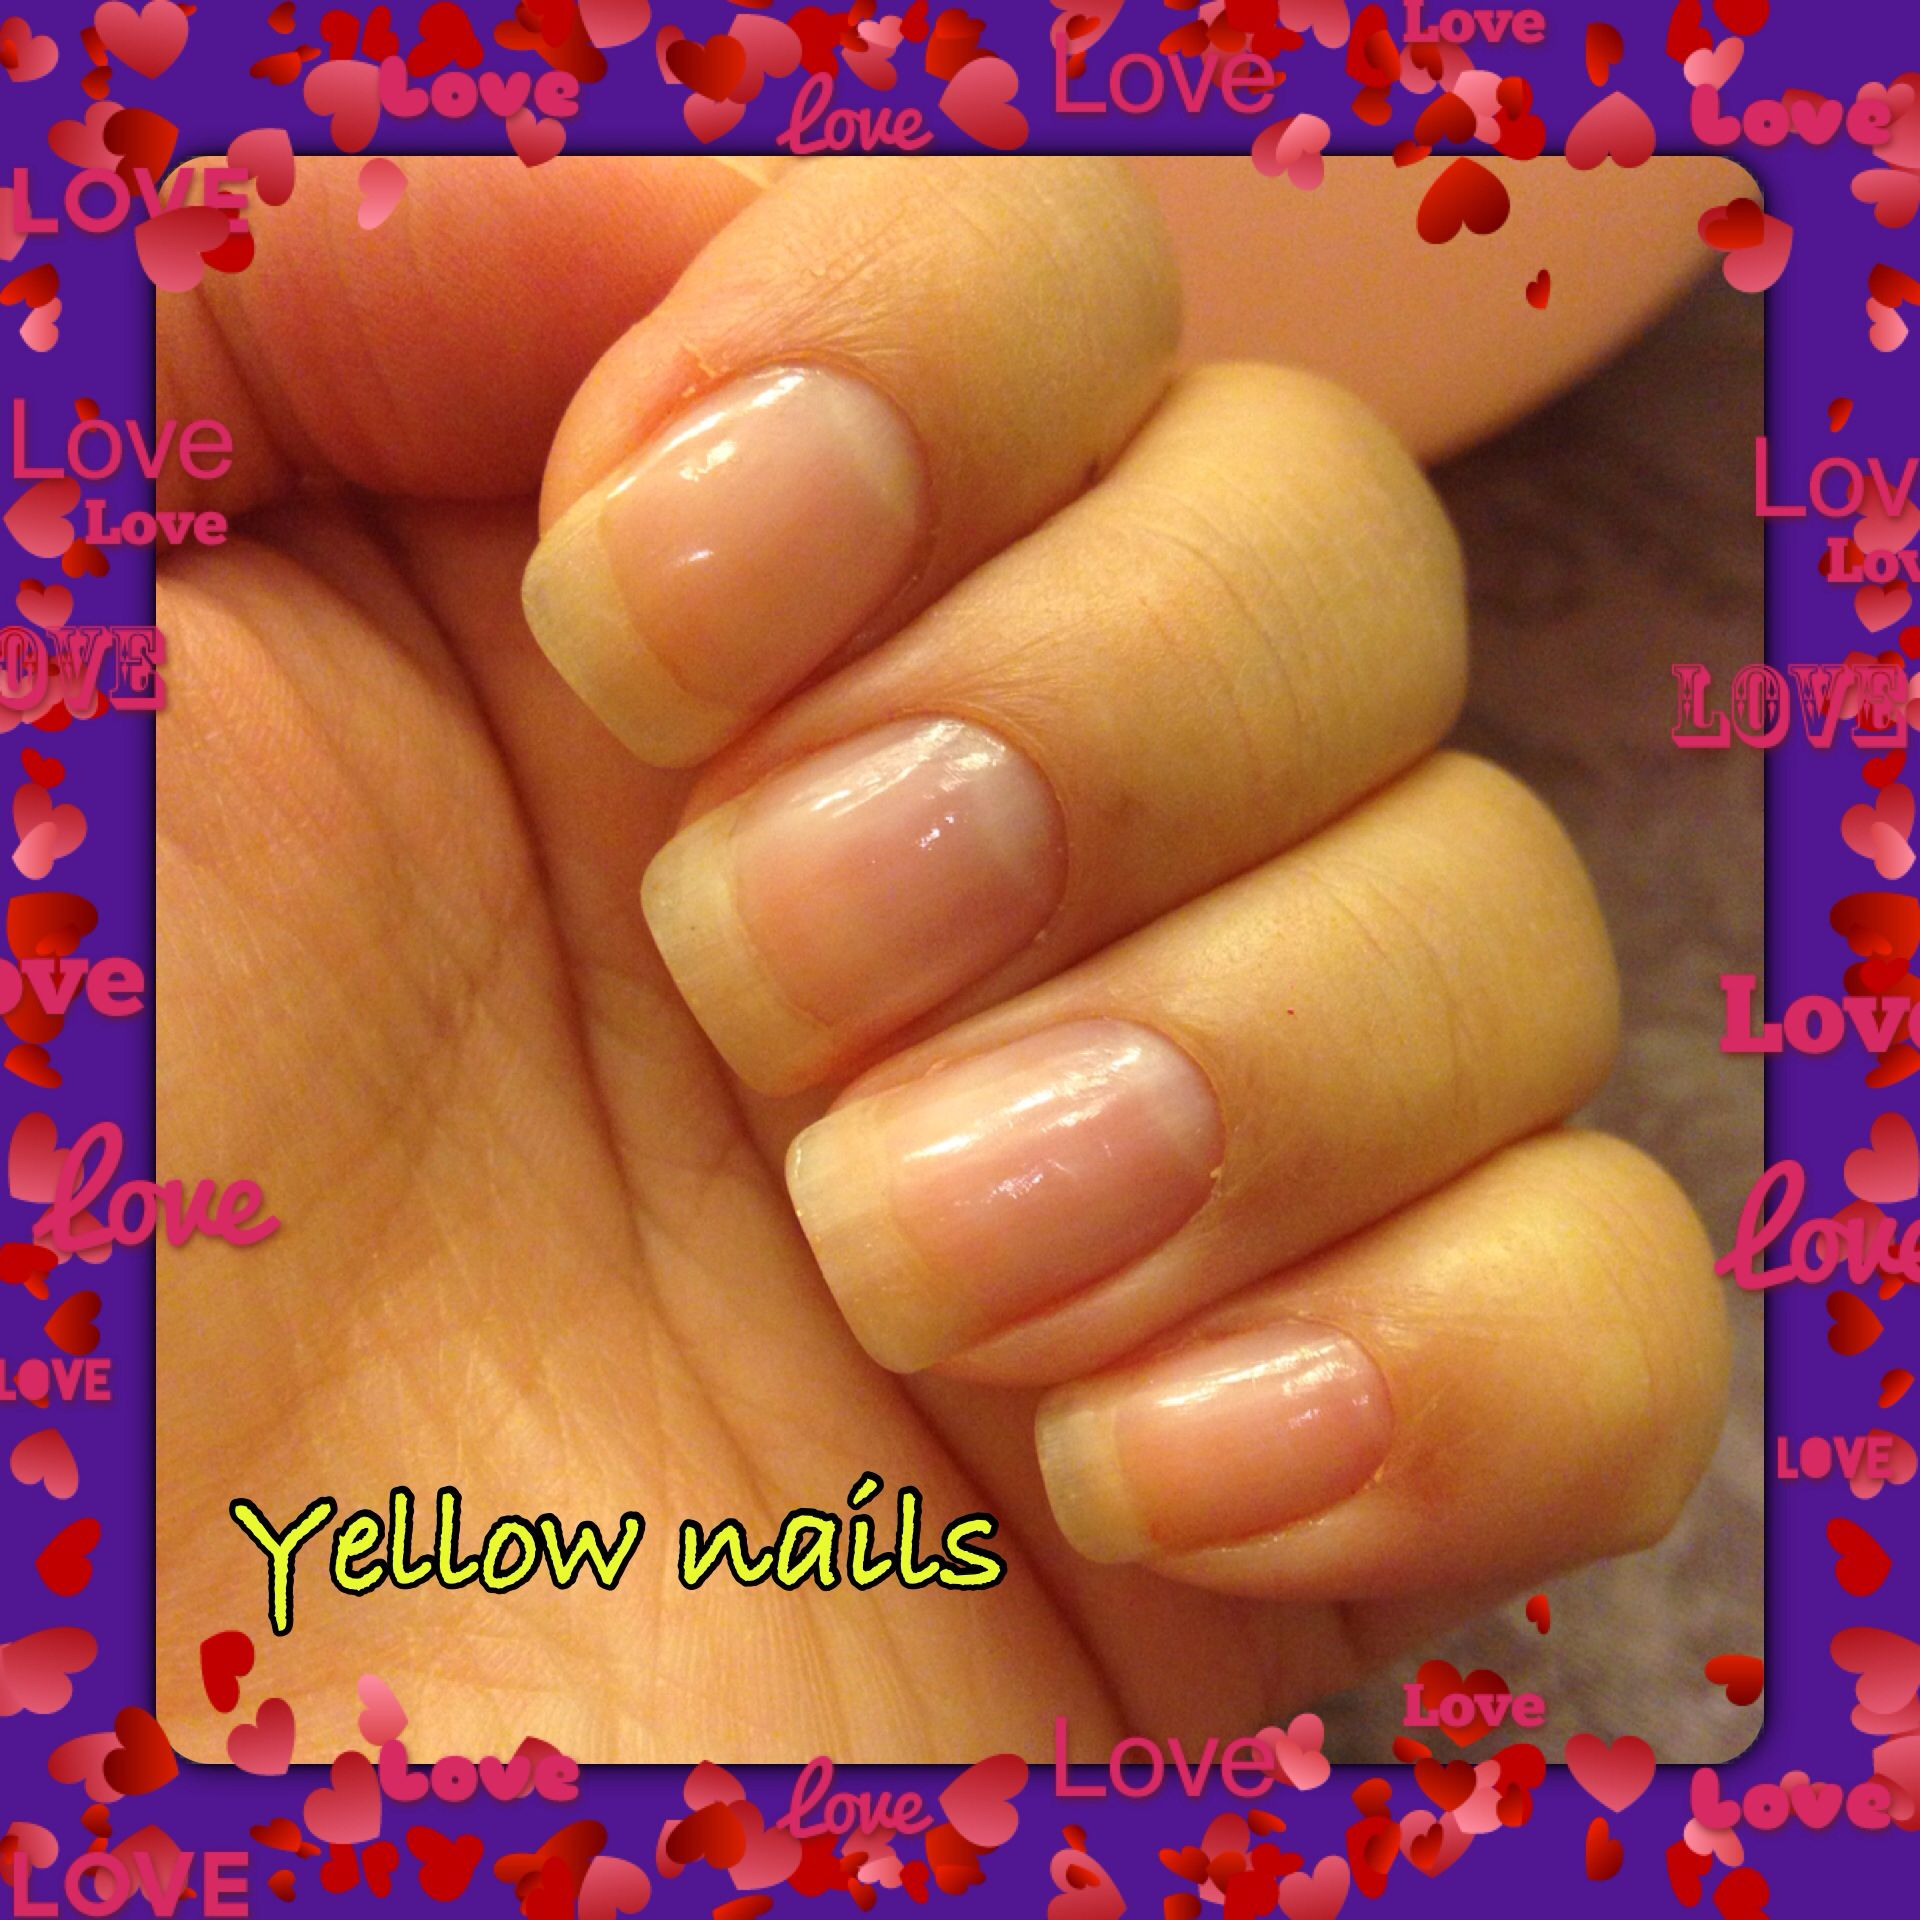 bd5a08c67fa2d8a79ce908592057843d - How To Get Rid Of Yellow Nails With Hydrogen Peroxide